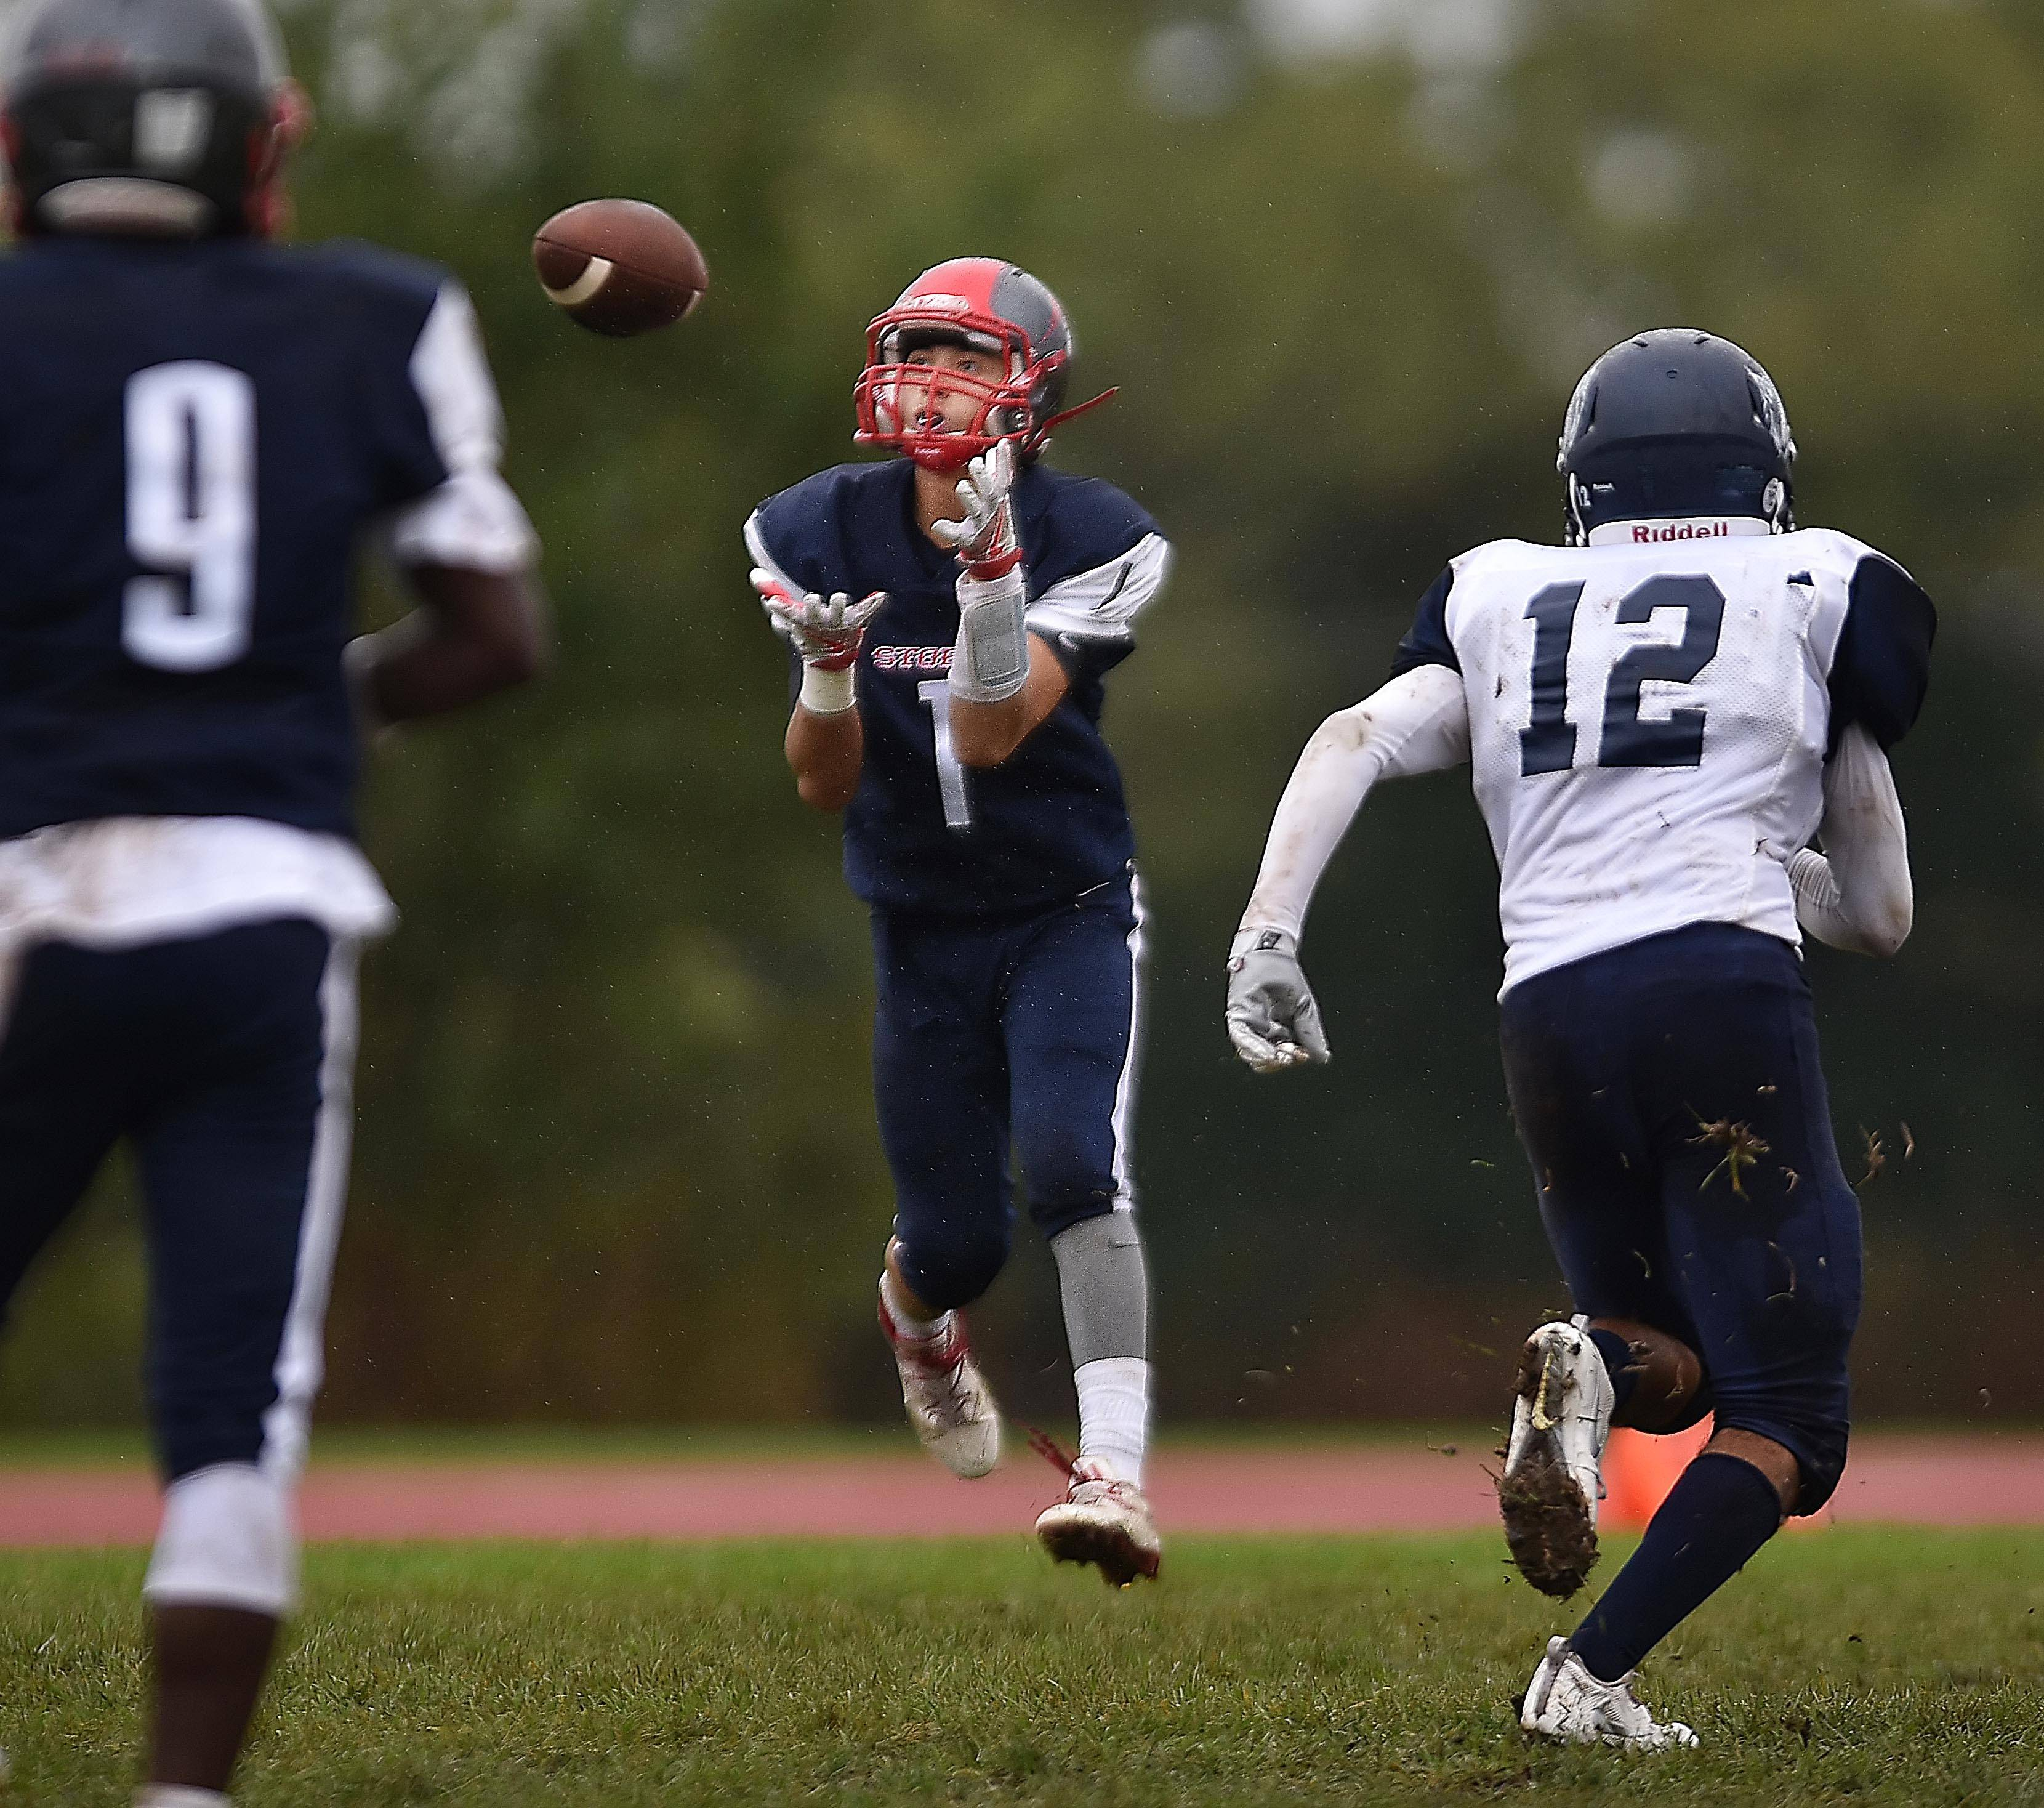 Images: West Chicago vs. South Elgin, football